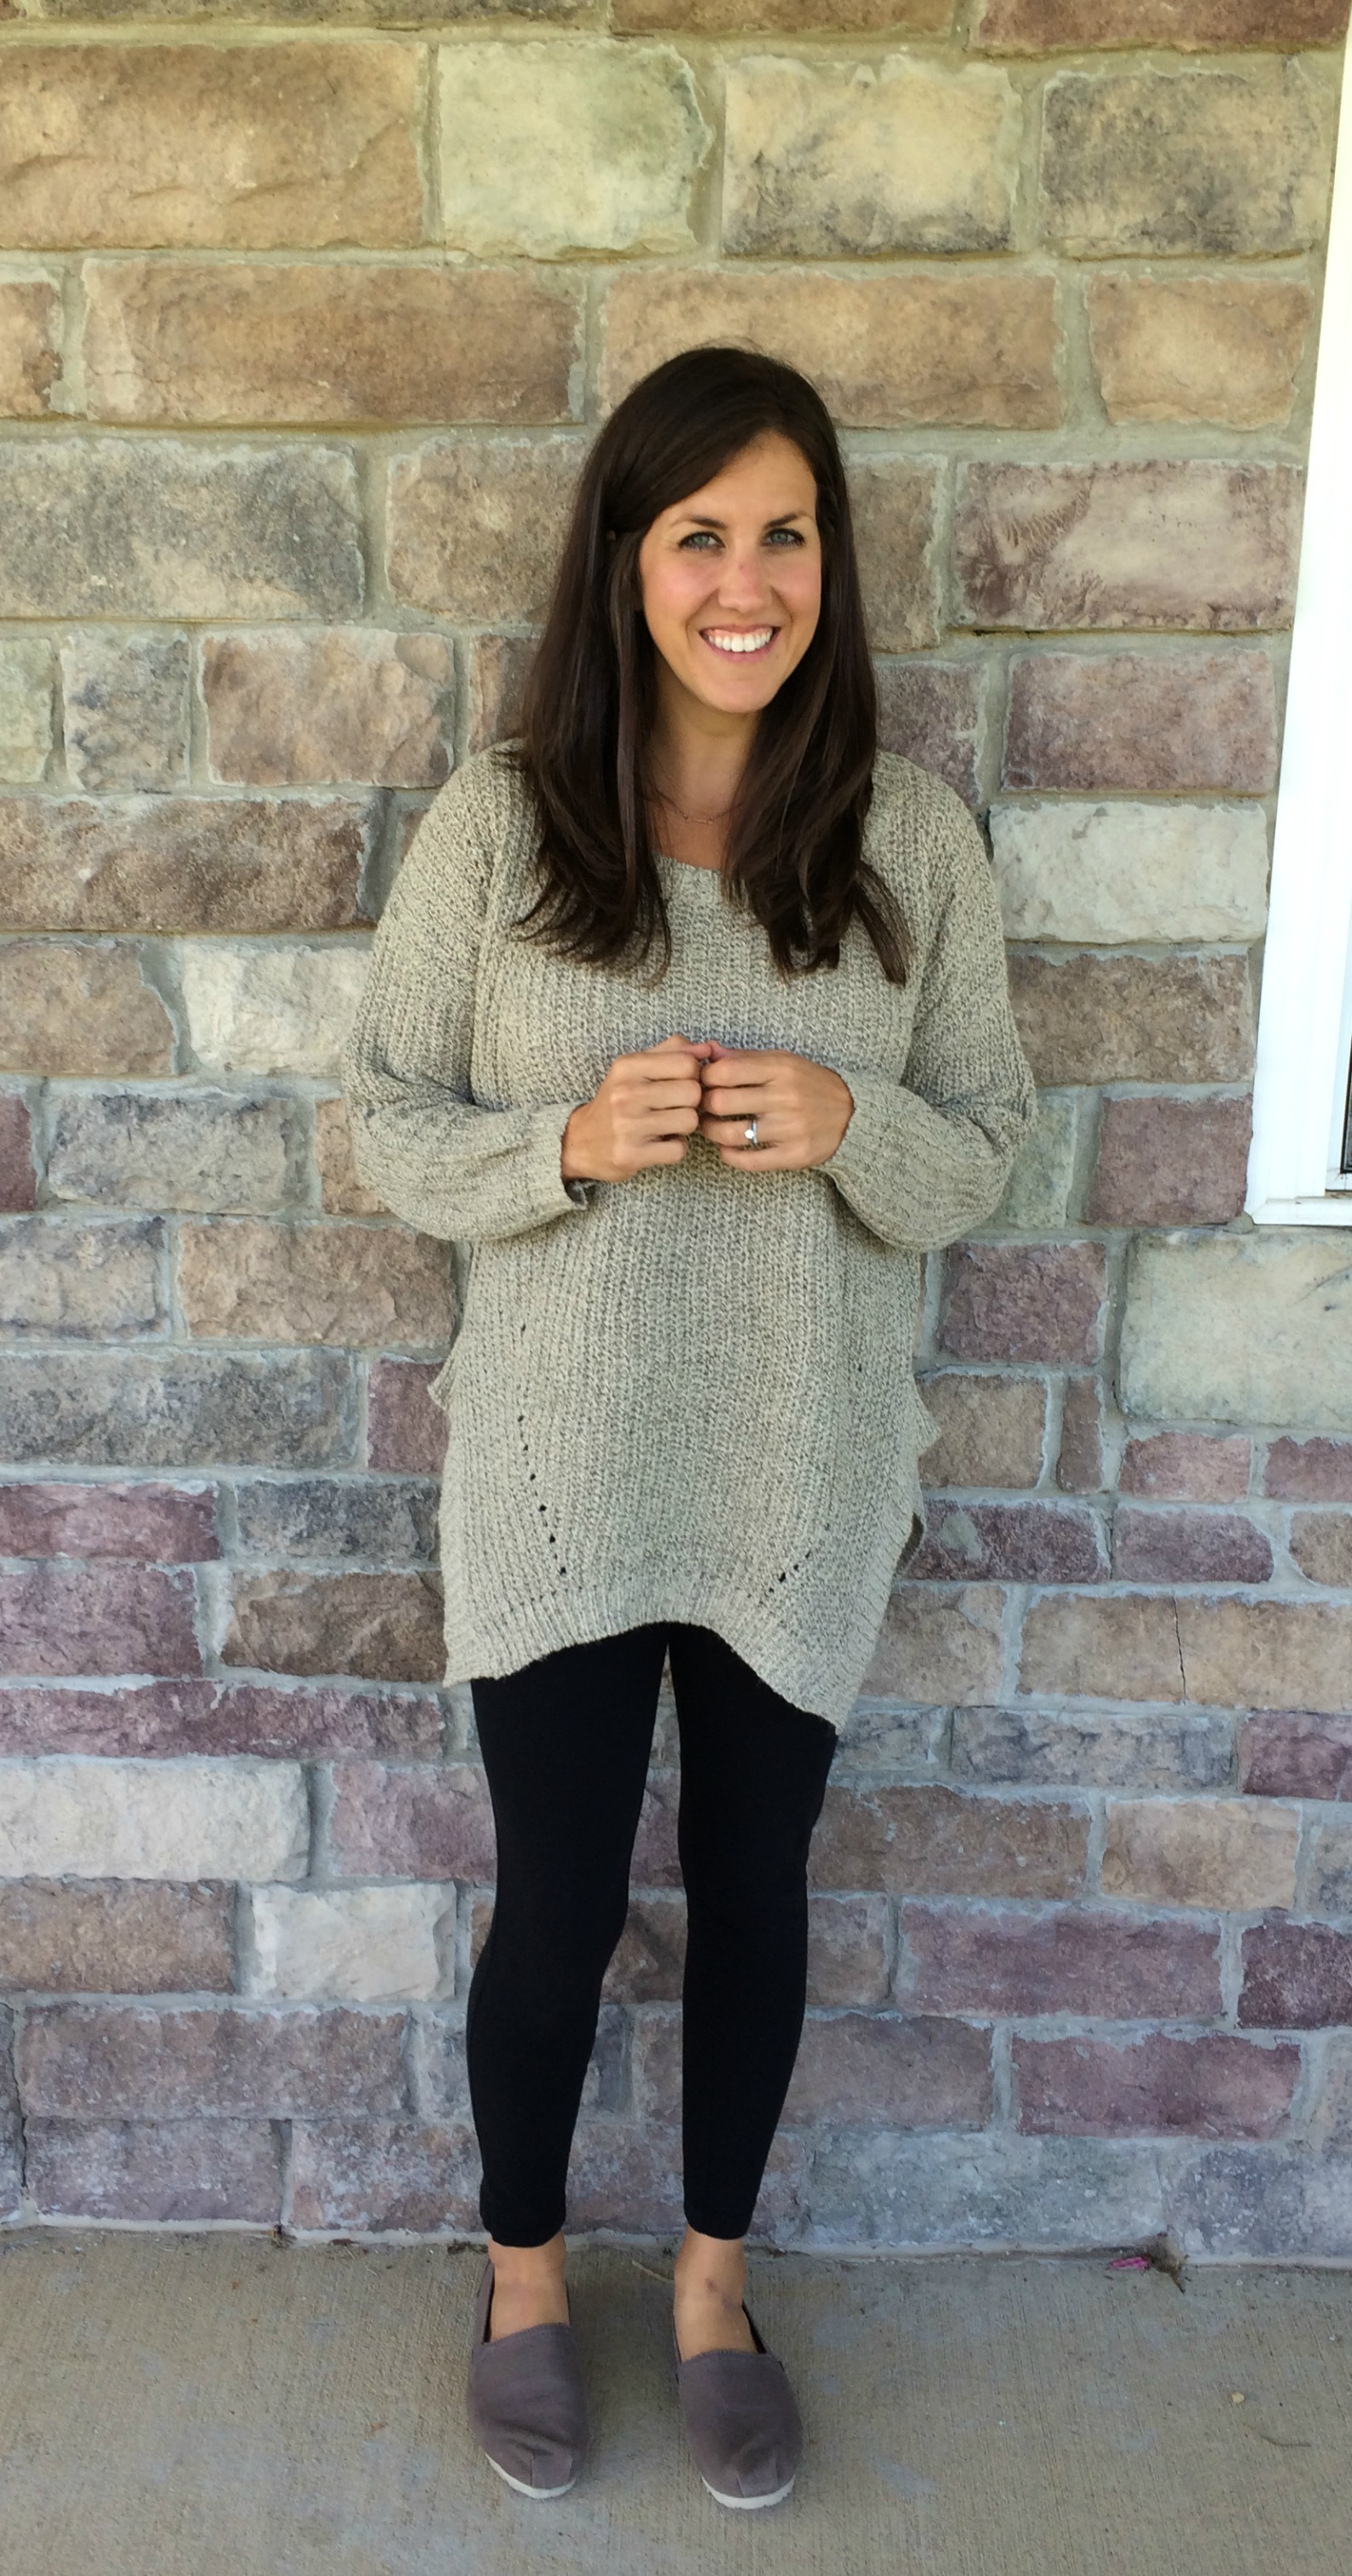 What I Wore, Real Mom Style: Oversized Sweater Outfit ...